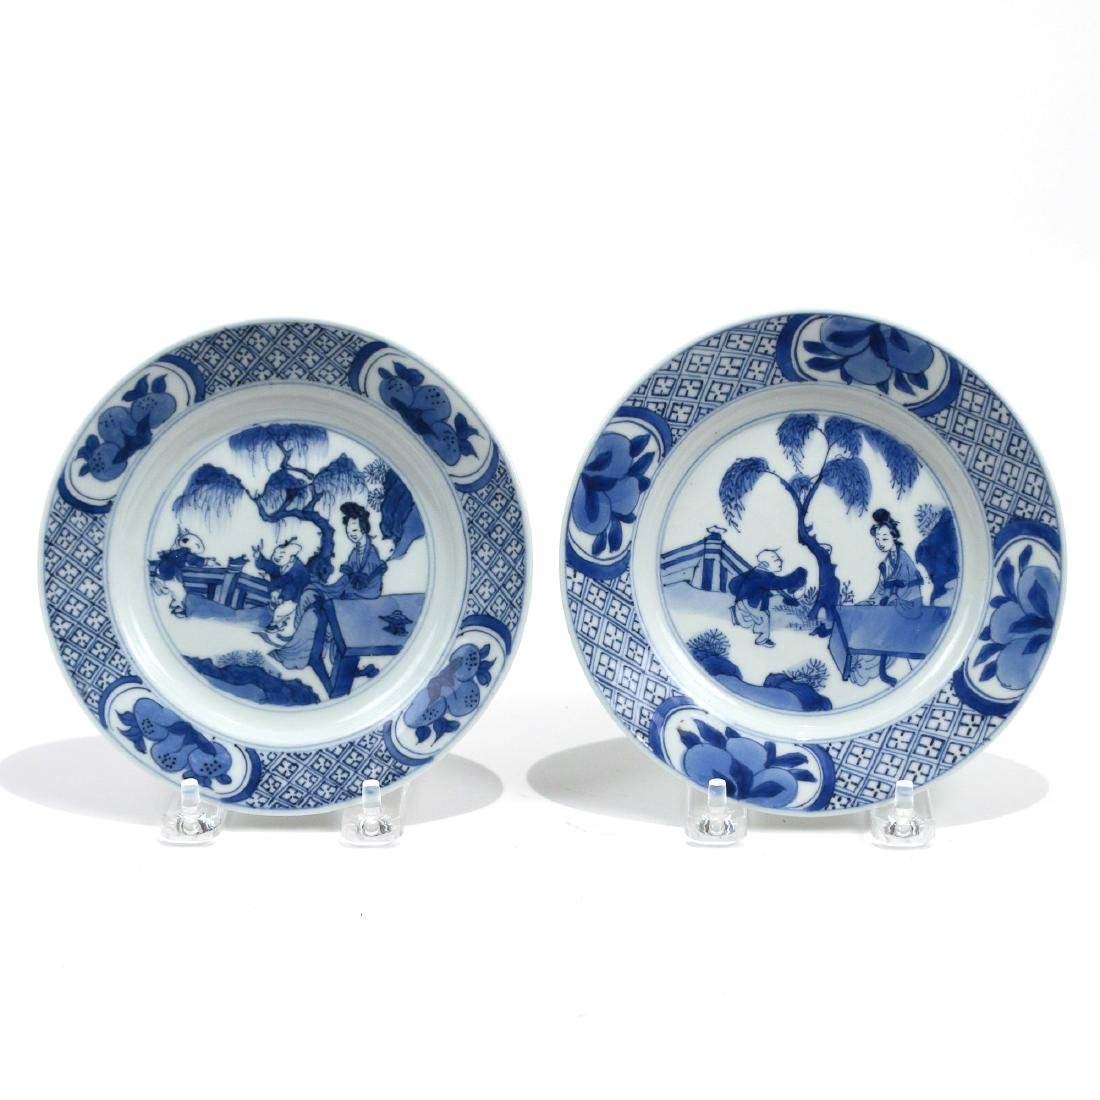 PAIR CHINESE BLUE & WHITE PORCELAIN DISHES